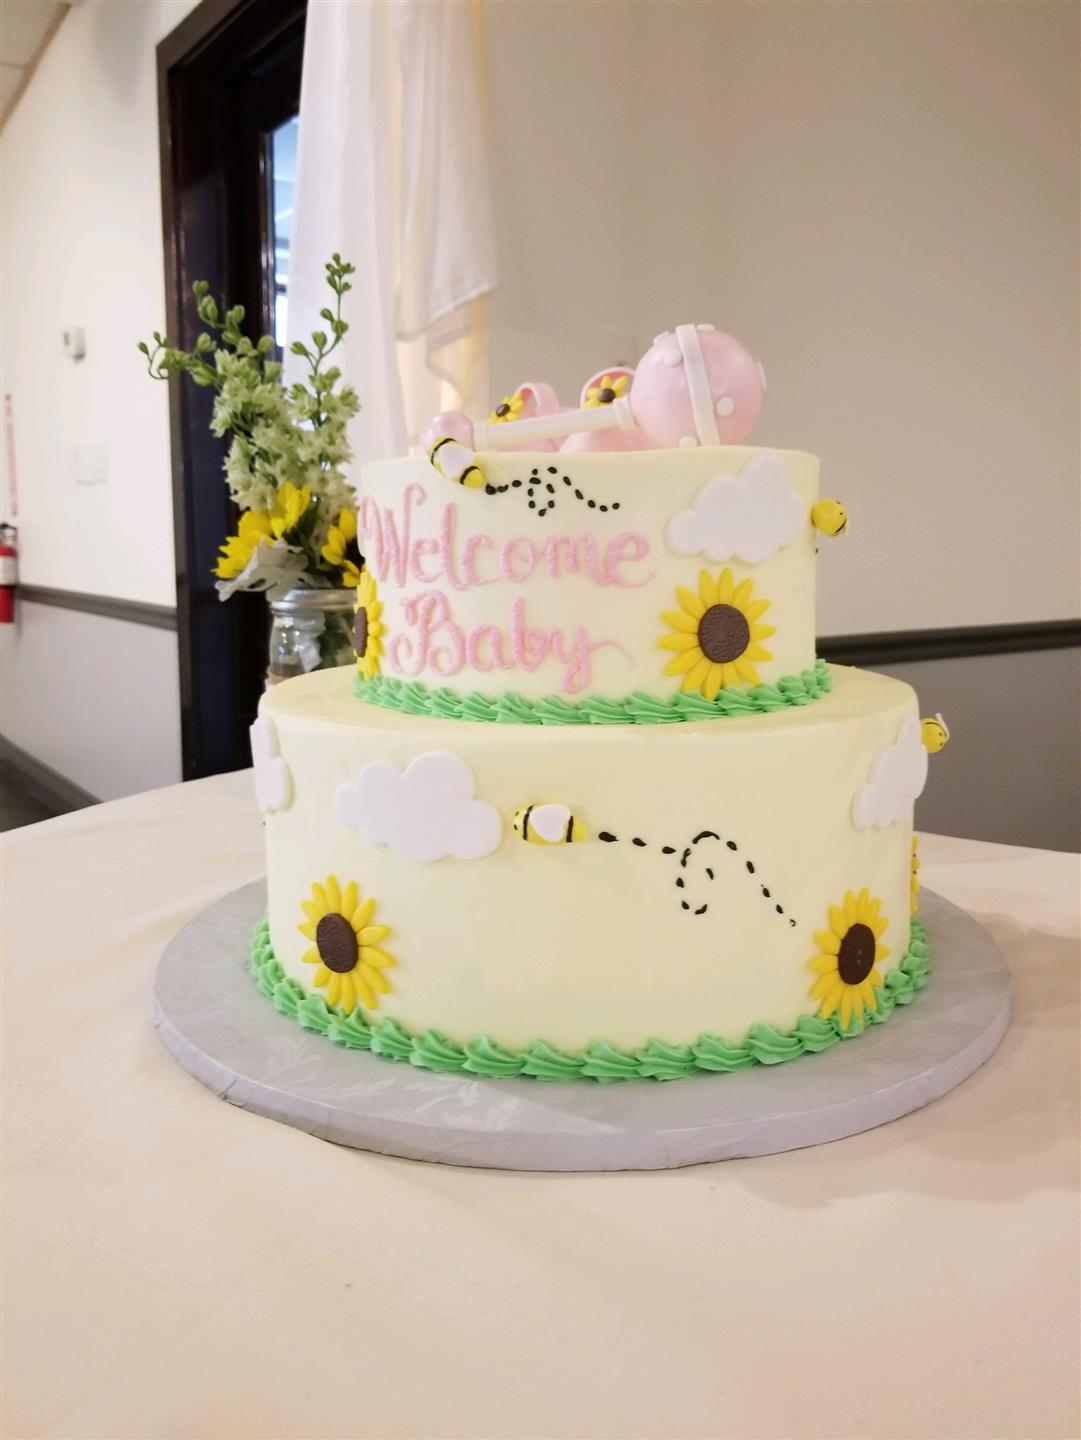 "Cake that says 'welcome baby"" with decorative flowers"